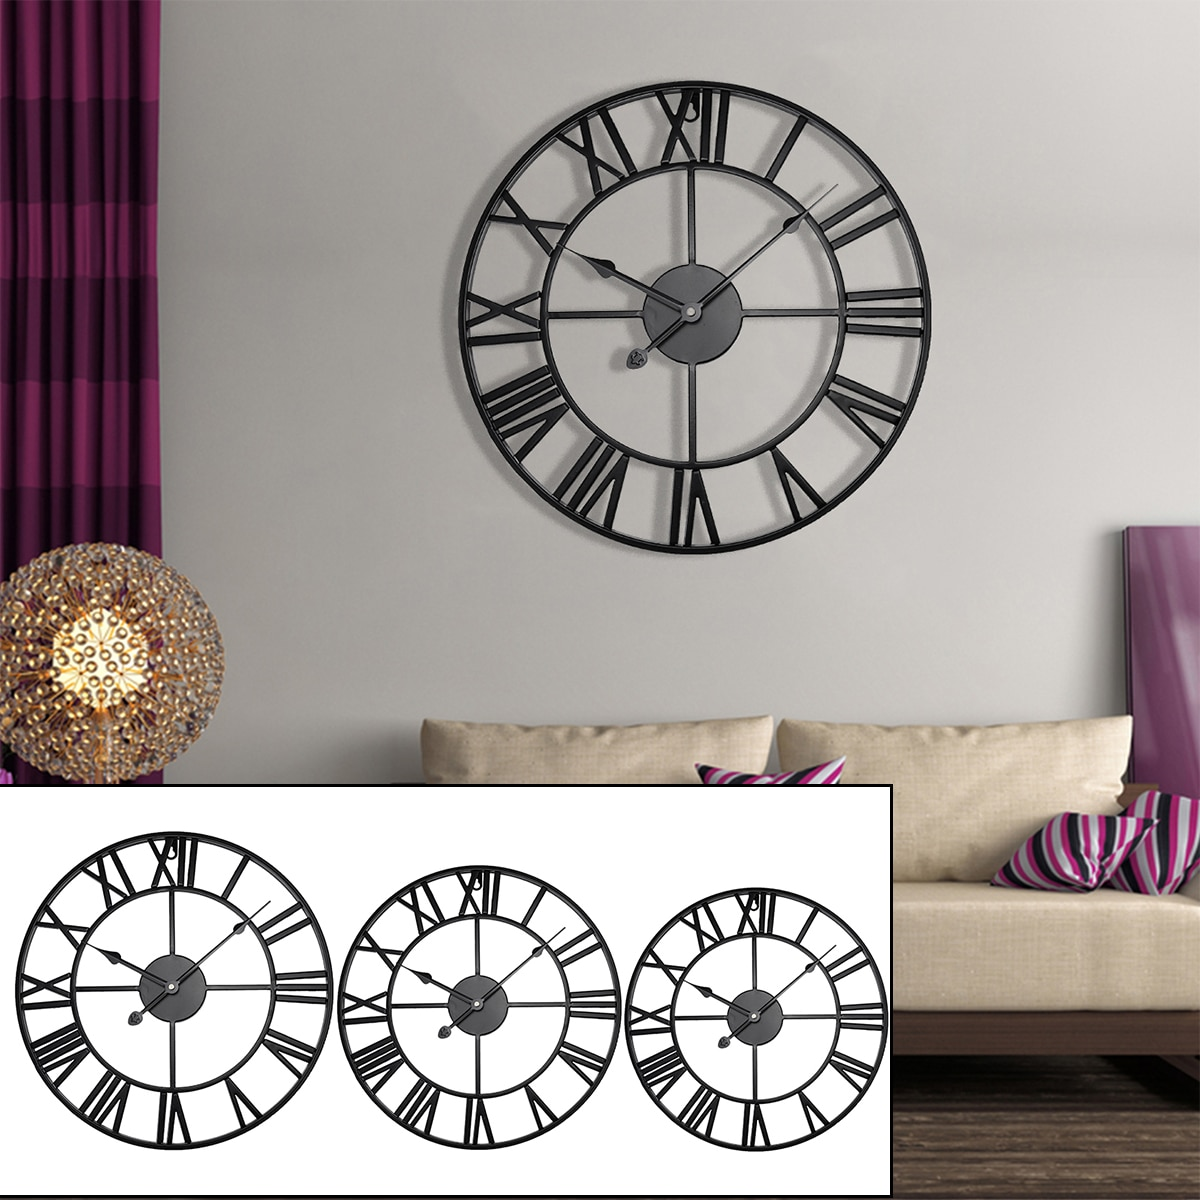 40/47/60/80cm Modern 3D Large Retro Black Iron Round Art Hollow Metal Wall Clock Nordic Roman Numerals Clock Home Decoration